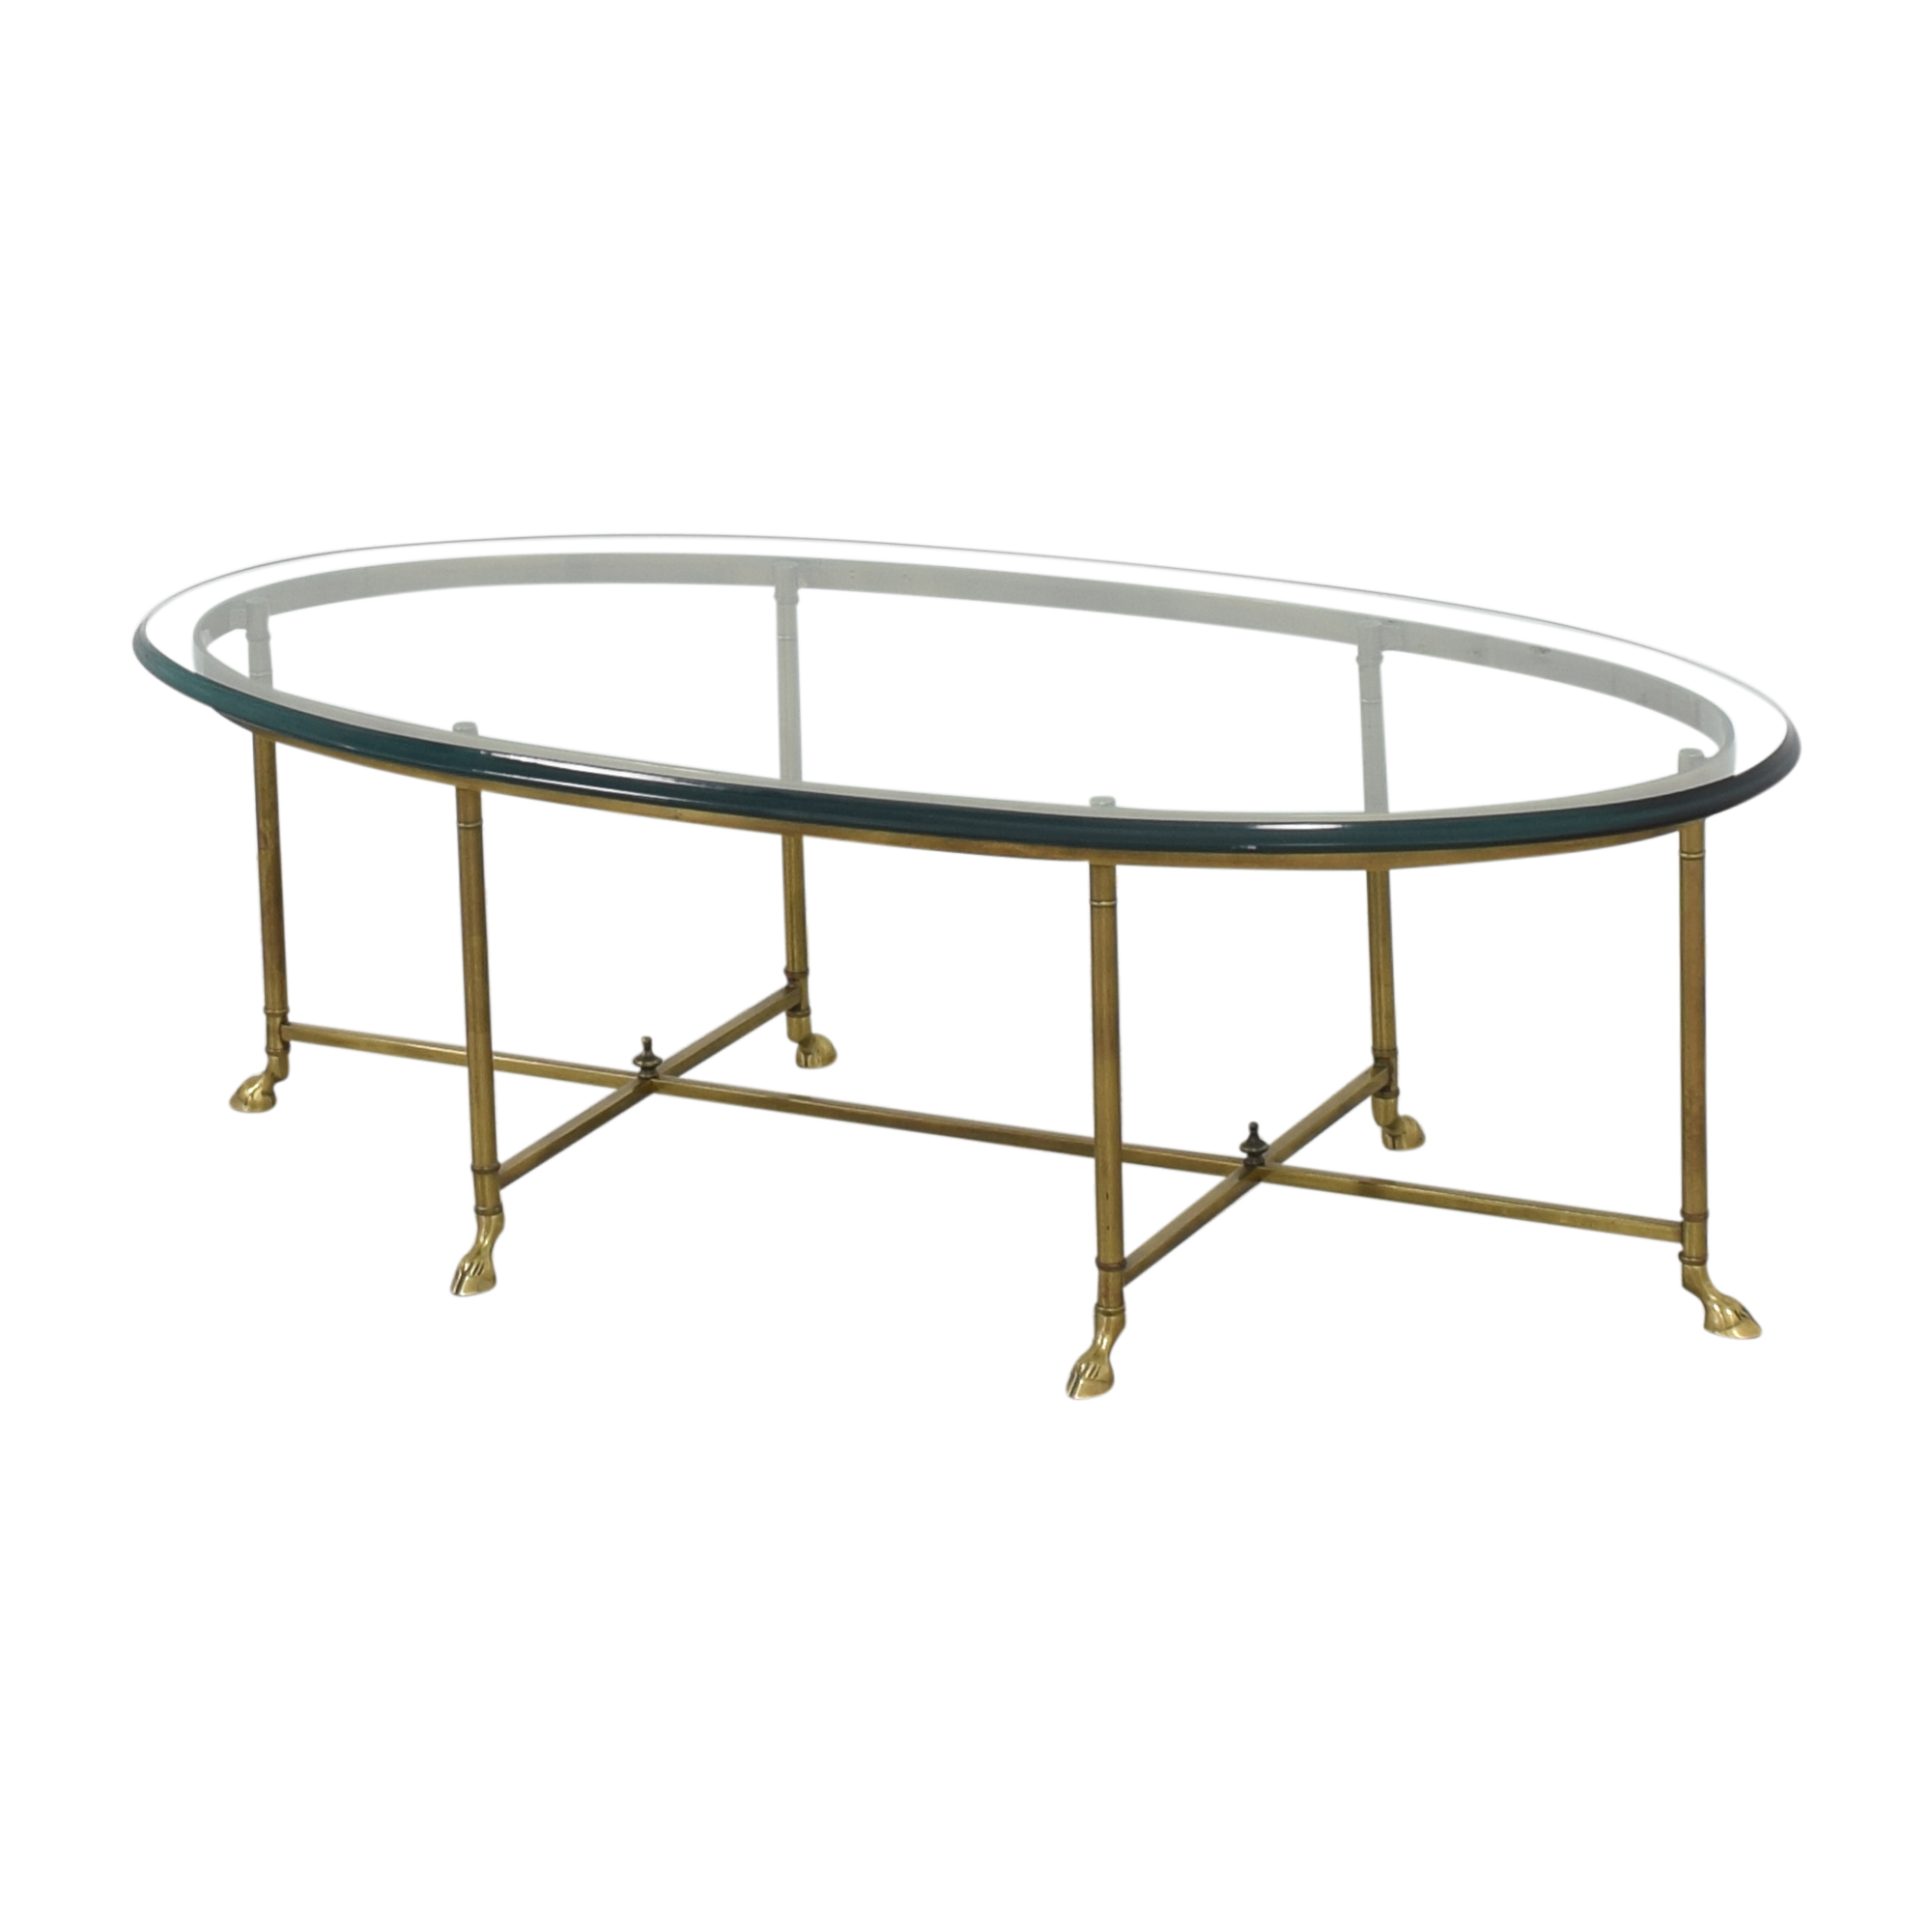 Stickley Furniture Stickley Furniture Oval Cocktail Table Coffee Tables